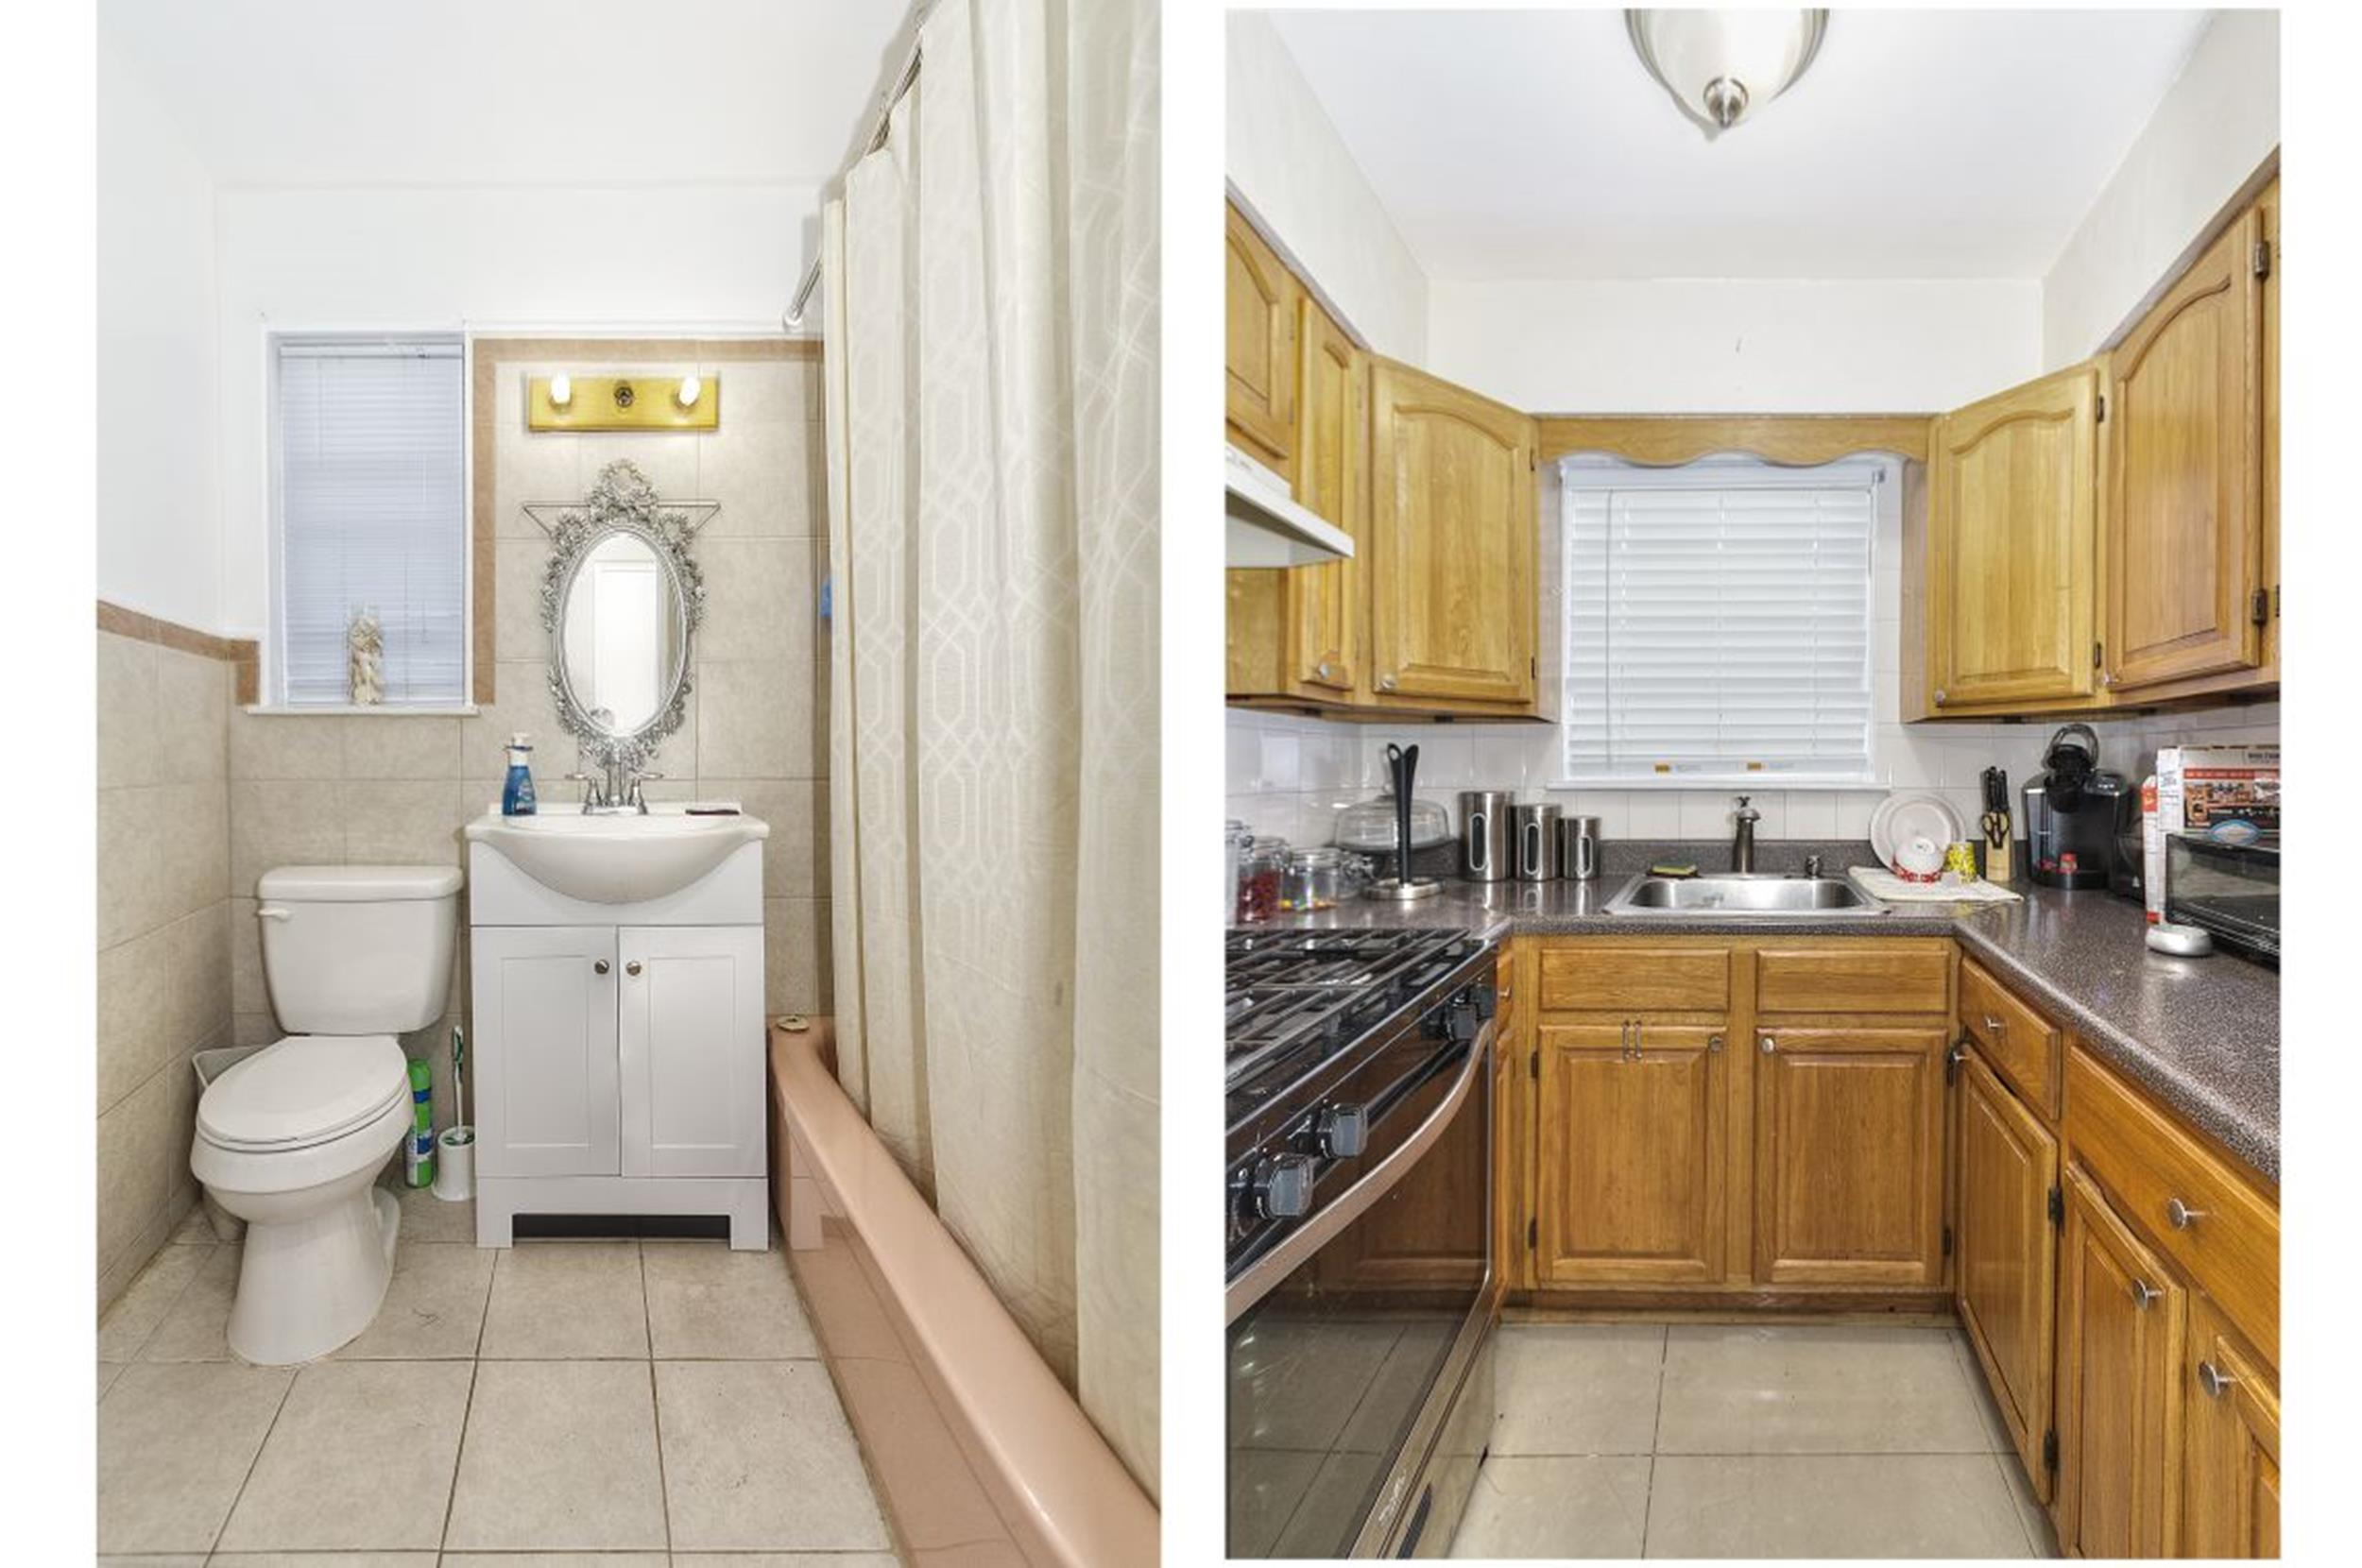 Kitchen cabinets 65th street brooklyn - Kitchen Cabinets 65th Street Brooklyn 17